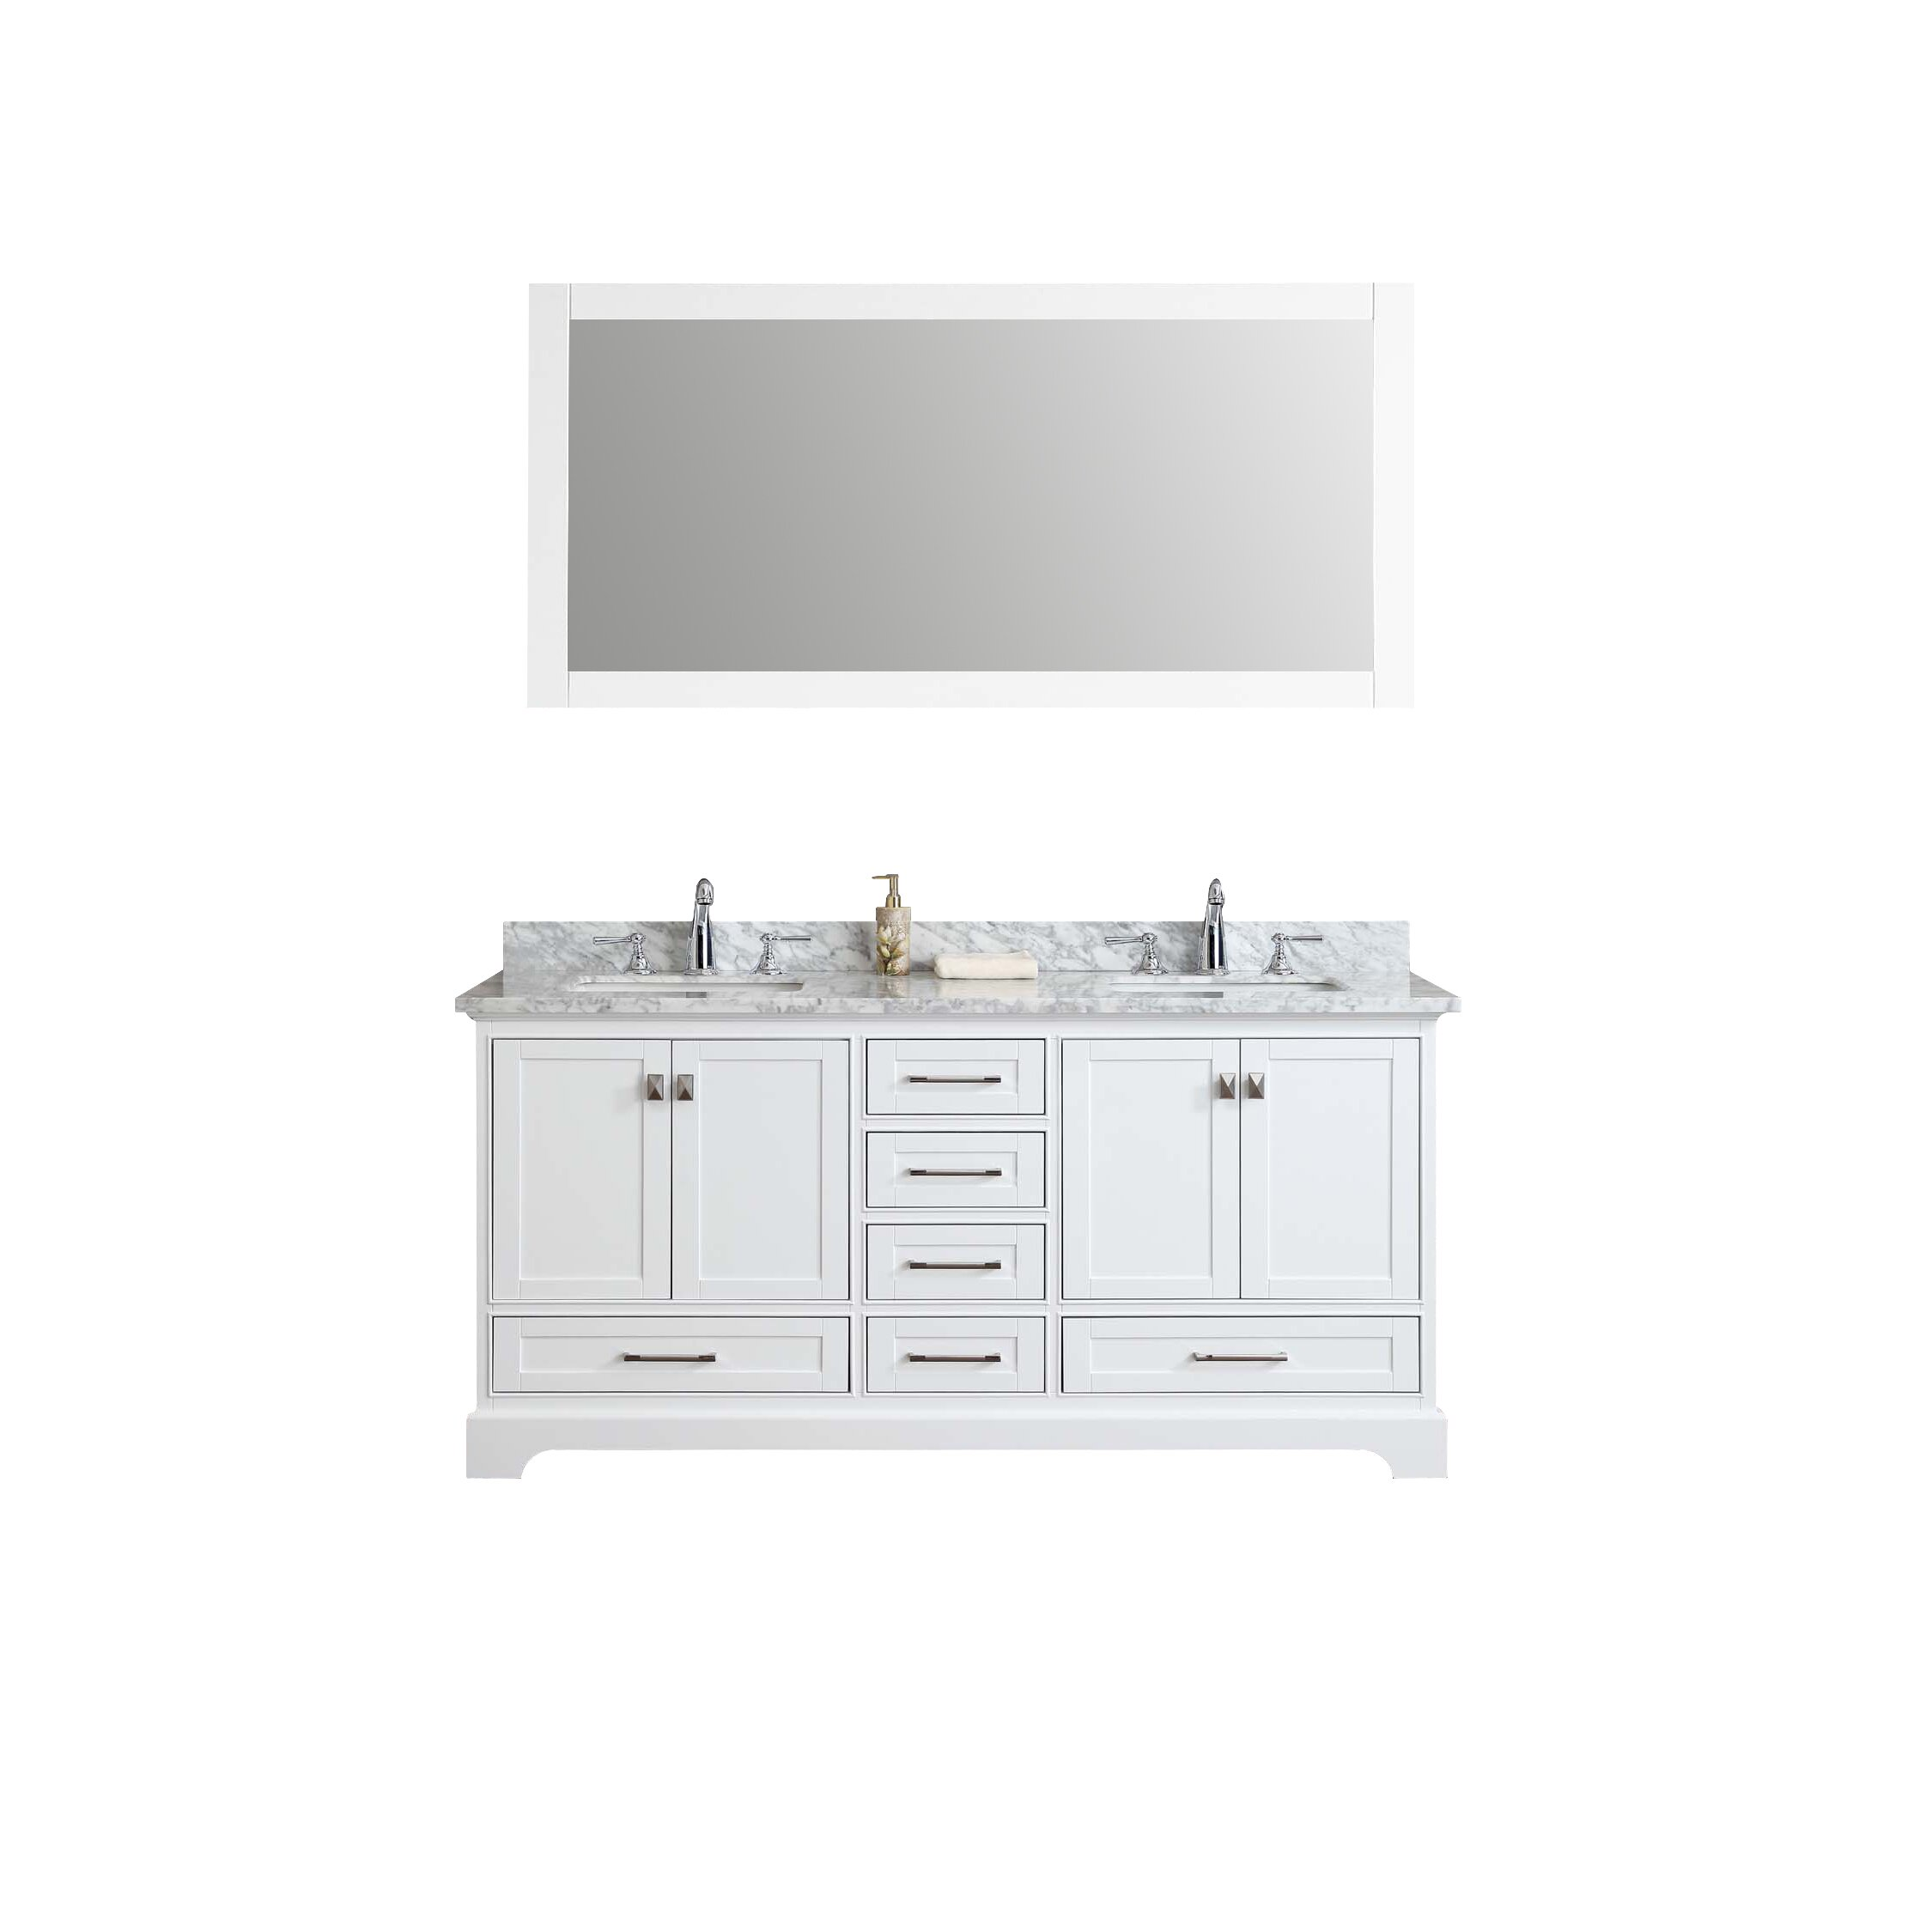 Dcor Design Barrington 72 Double Sink Bathroom Vanity Set With Mirror Reviews Wayfair